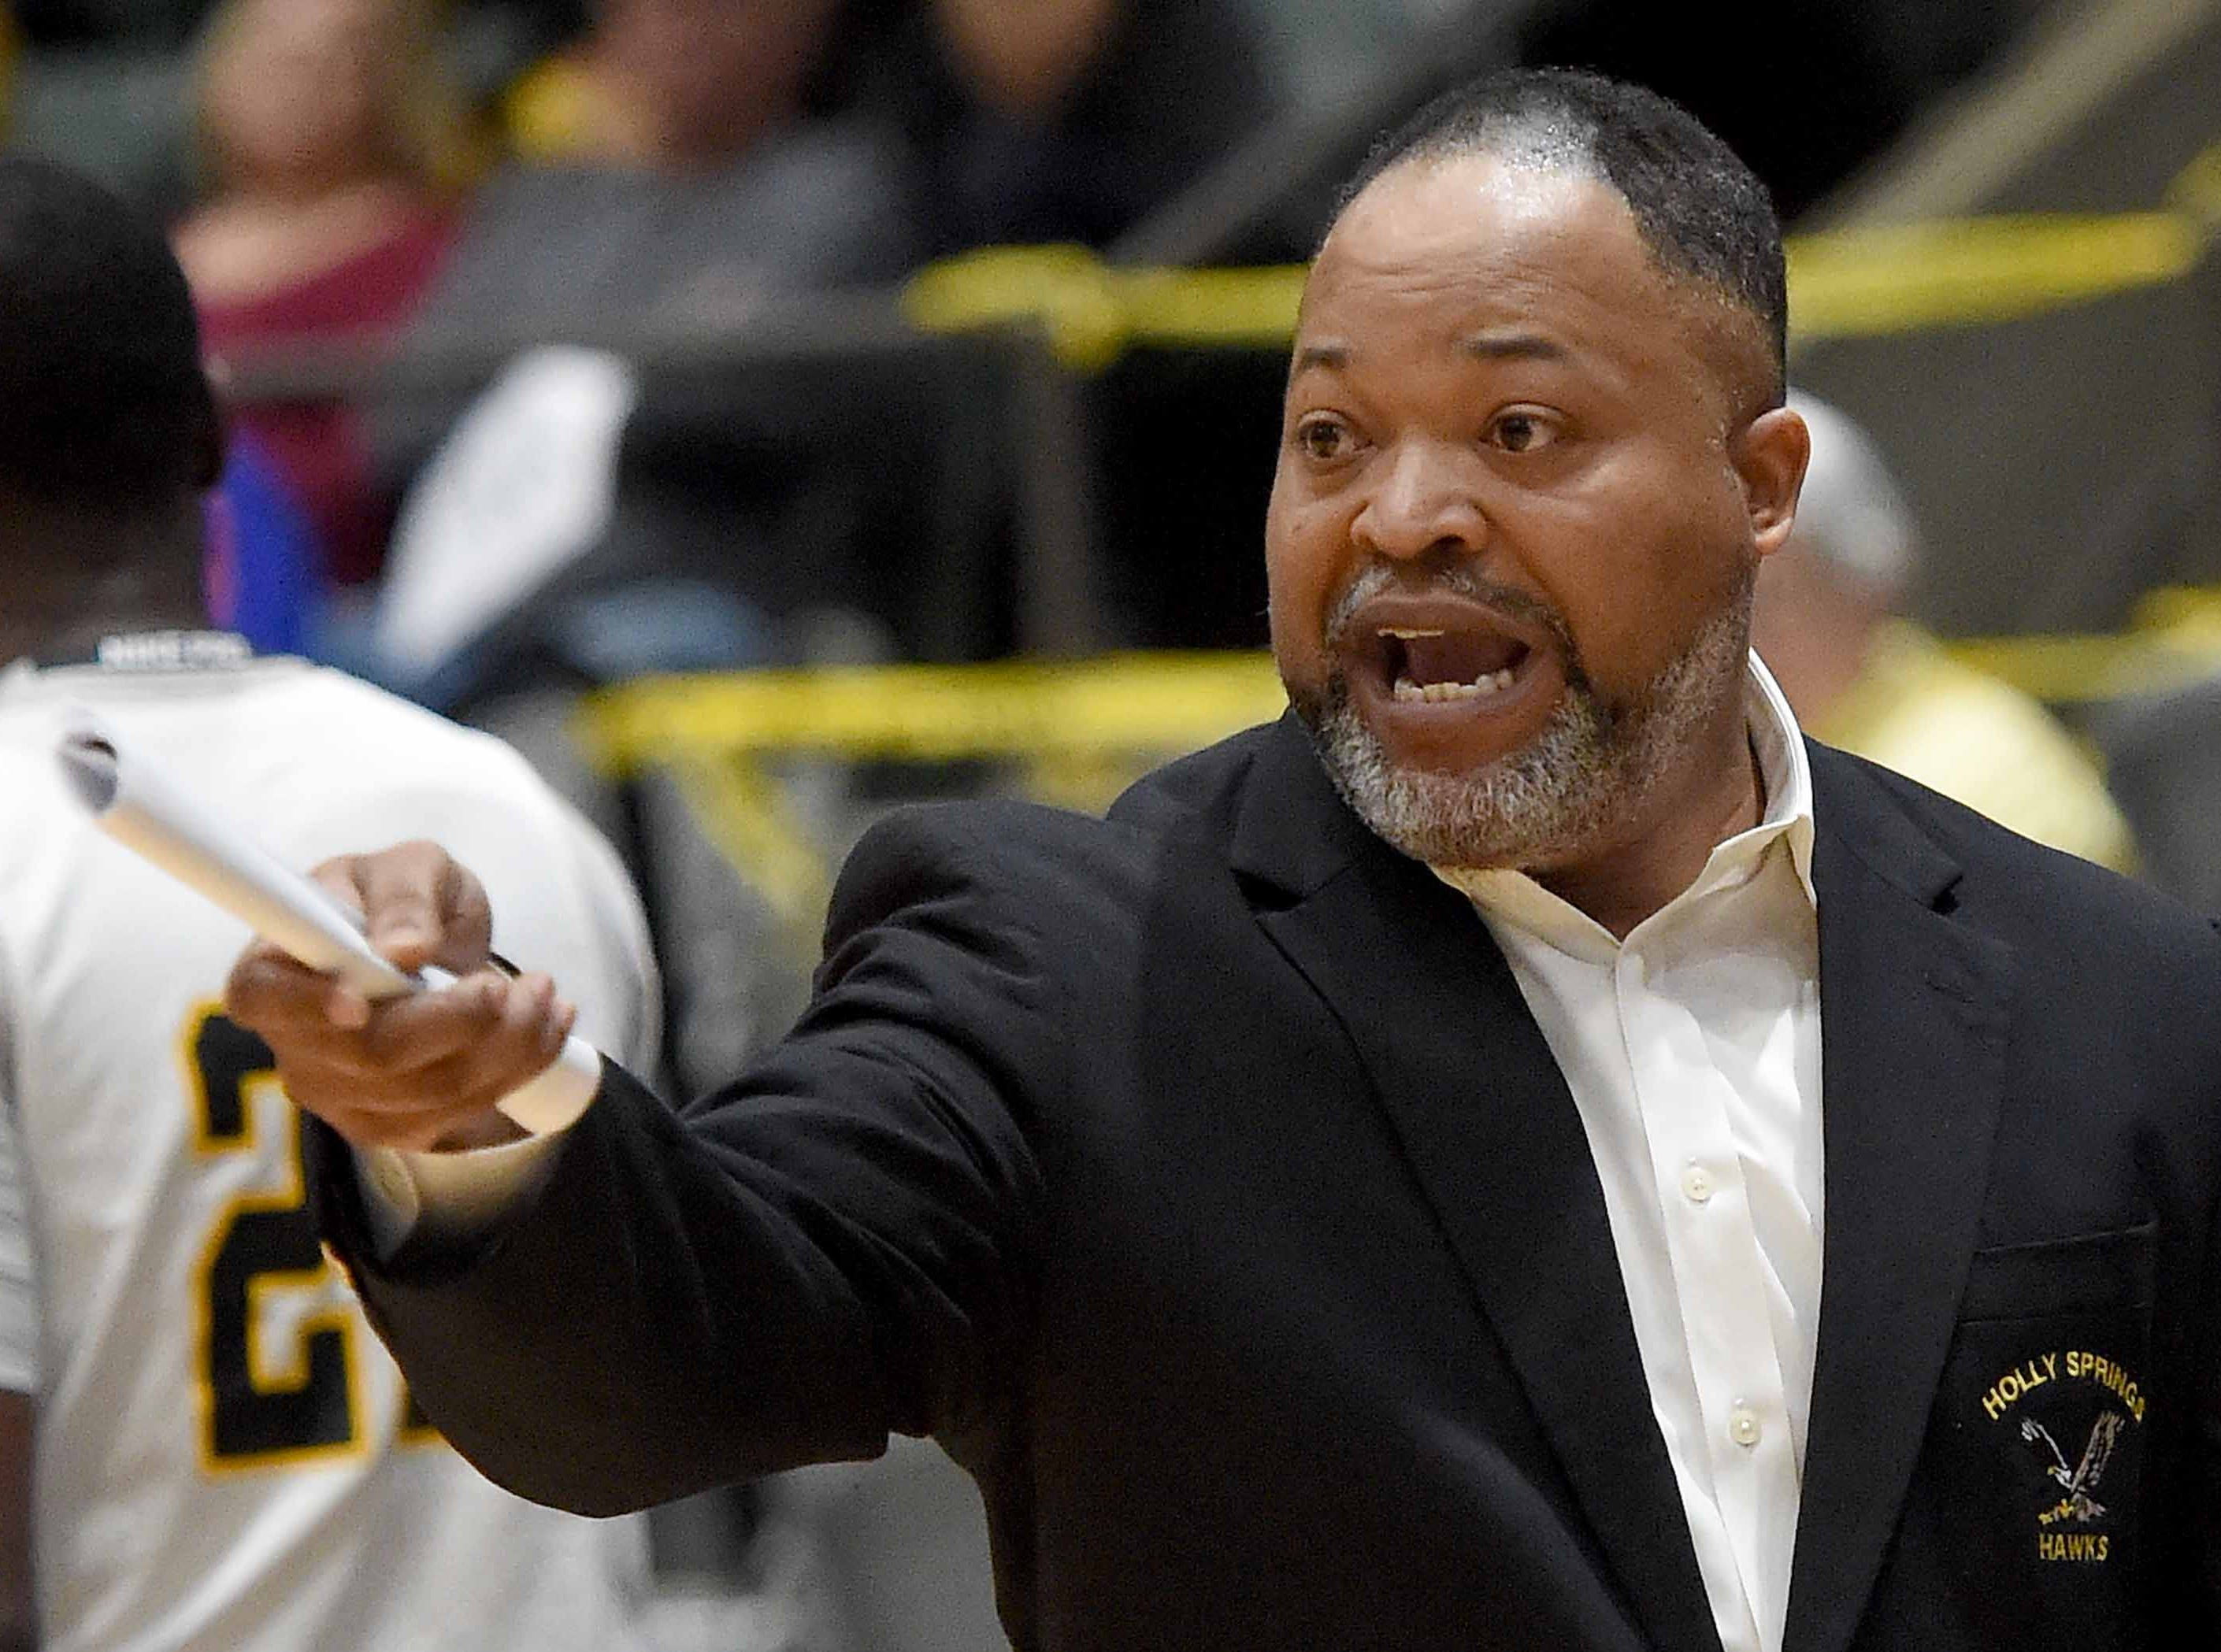 Holly Springs head coach Sylvester Kilgore Jr. calls out to his defense in the finals of the MHSAA C Spire State Basketball Championships at the Mississippi Coliseum in Jackson, Miss., on Saturday, March 9, 2019.